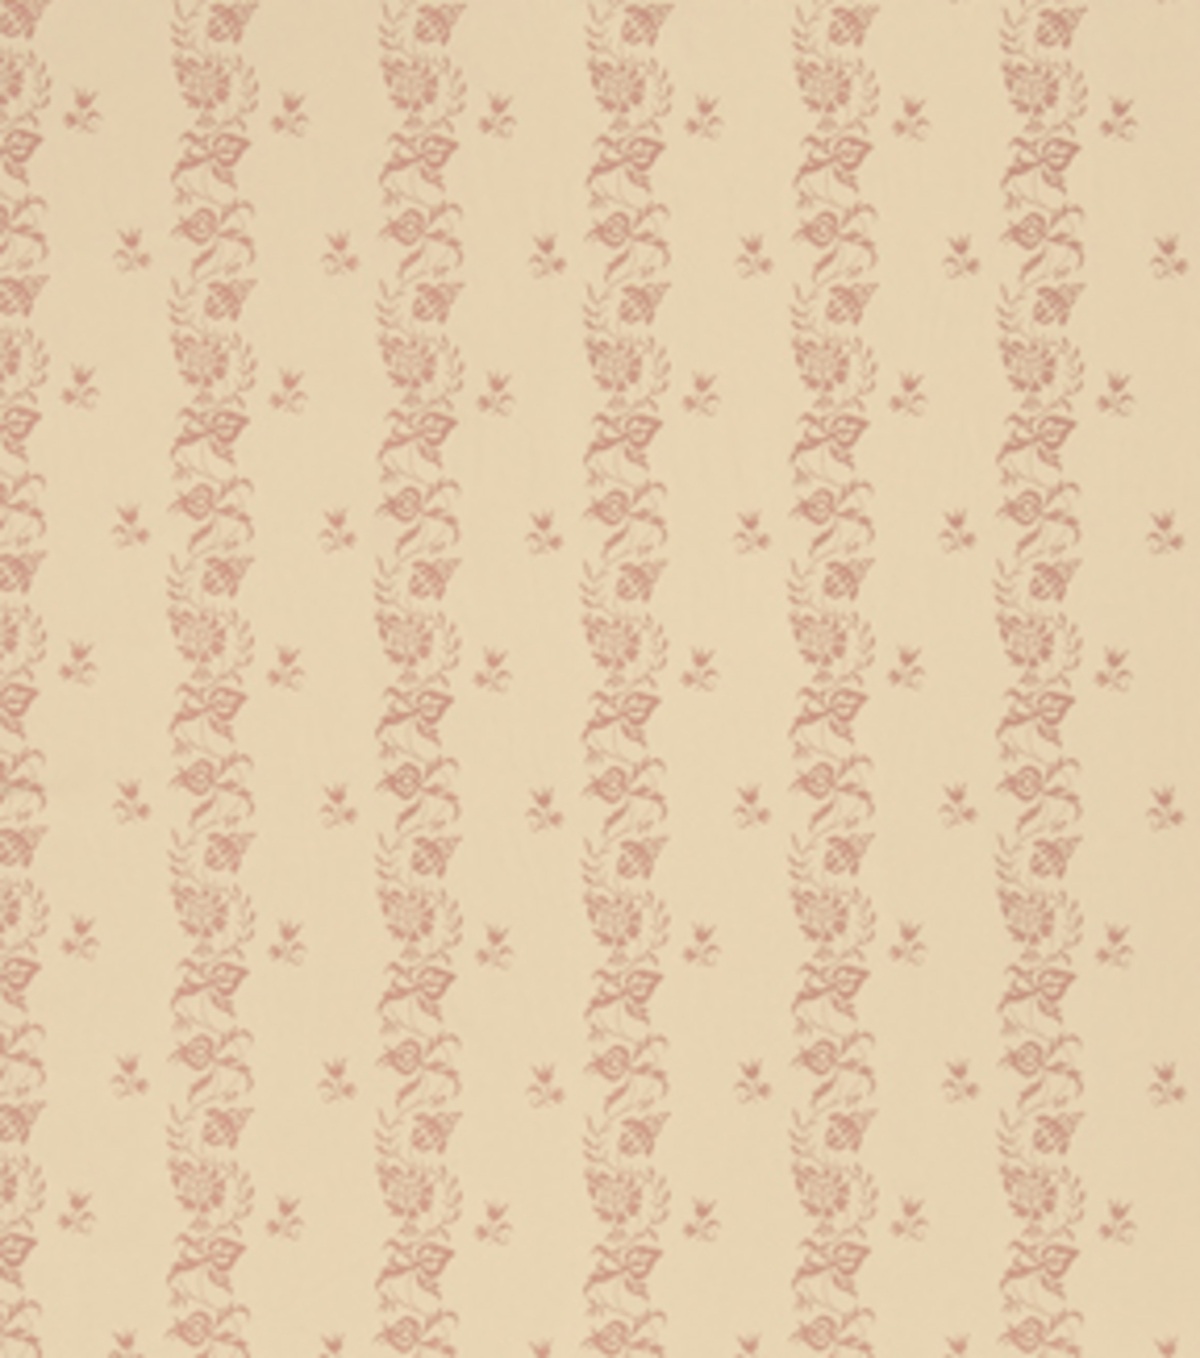 Home Decor 8\u0022x8\u0022 Fabric Swatch-French General Curtis Rose